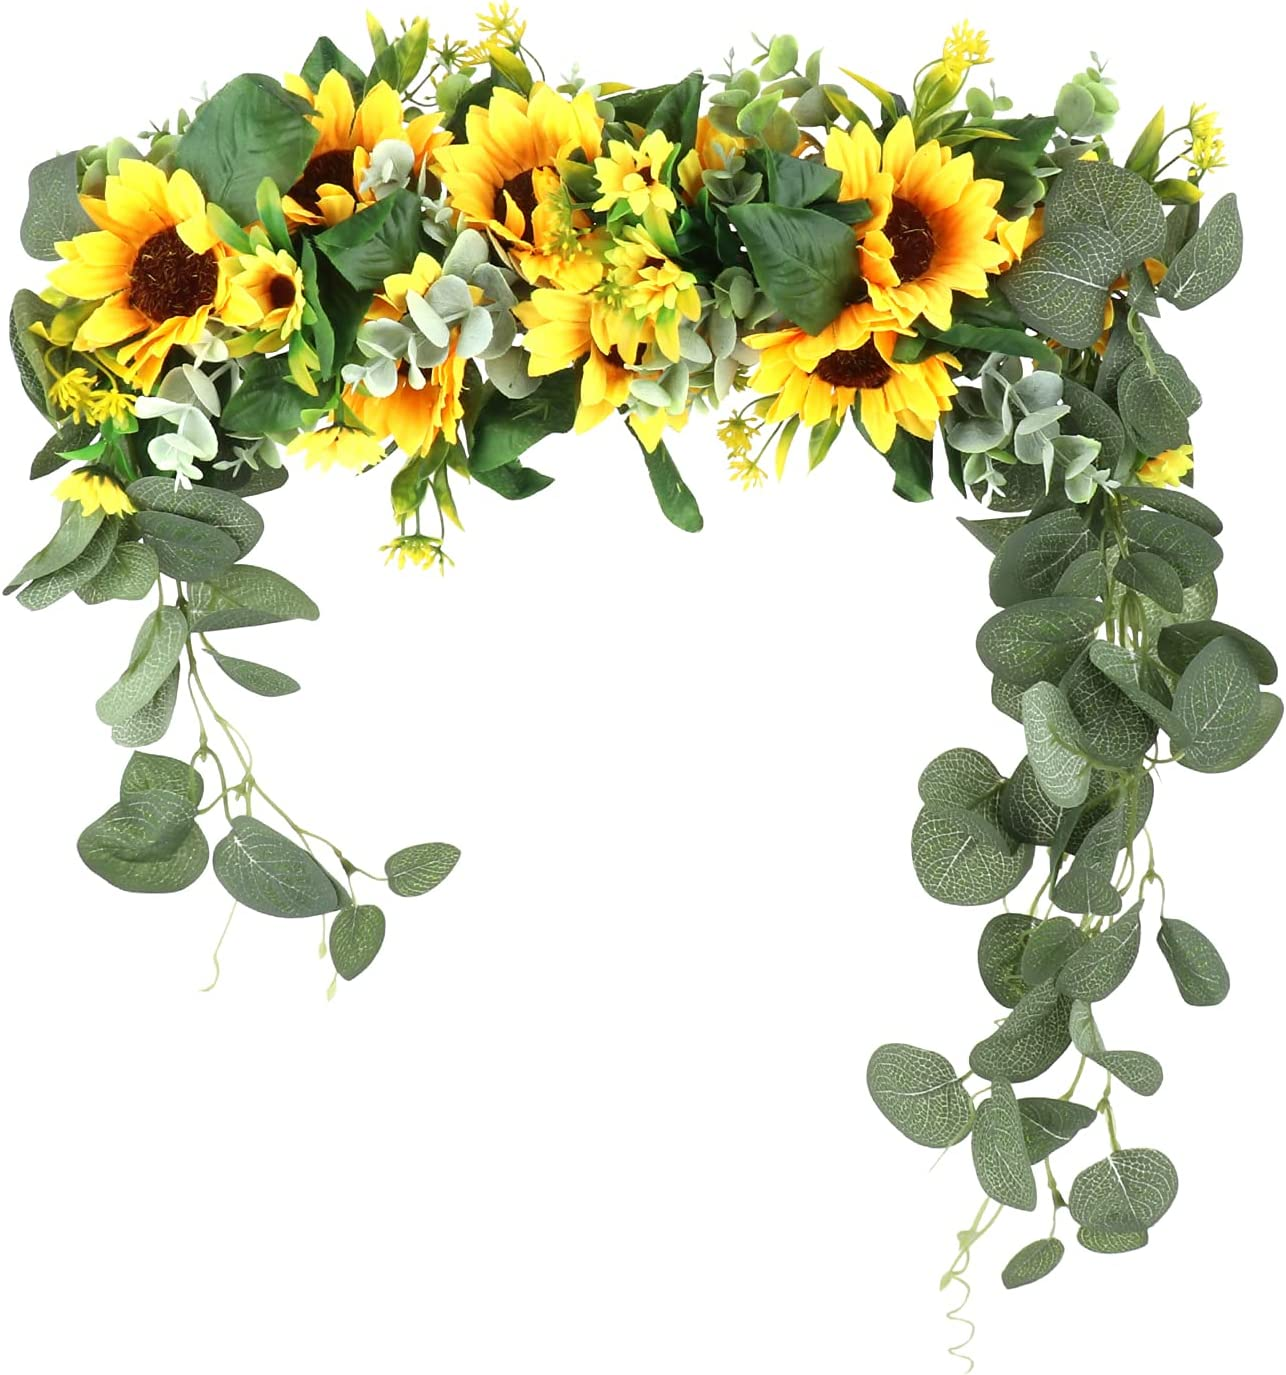 BELUAPI Artificial Sunflowers Popular High order products Swag Sunflower 17.71in Wedding Sw